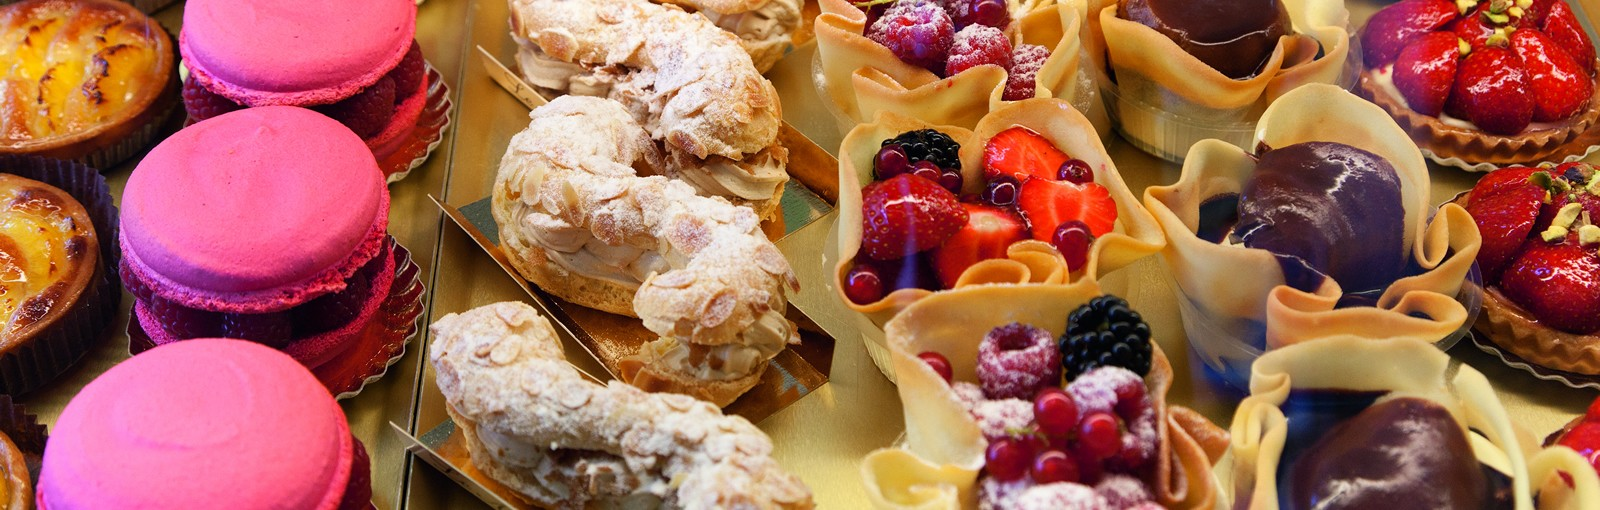 Tours Gastronomic delights of the Latin quarter - Walking tours - Paris Tours